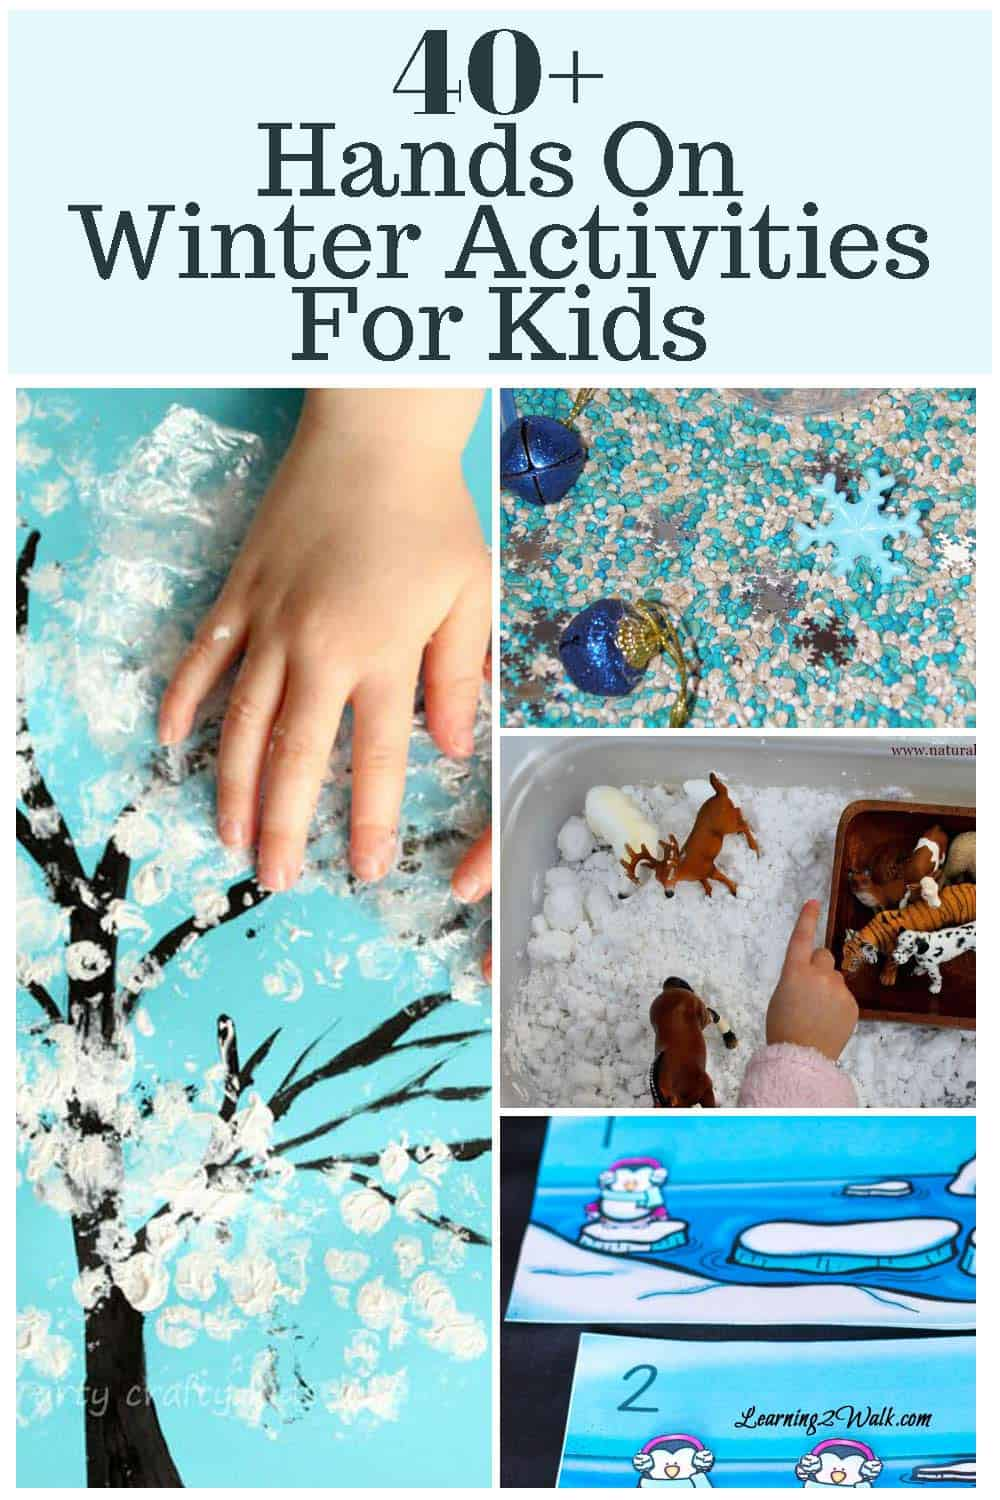 Fun Hands-On Winter Activities for Kids- Learning 2 Walk